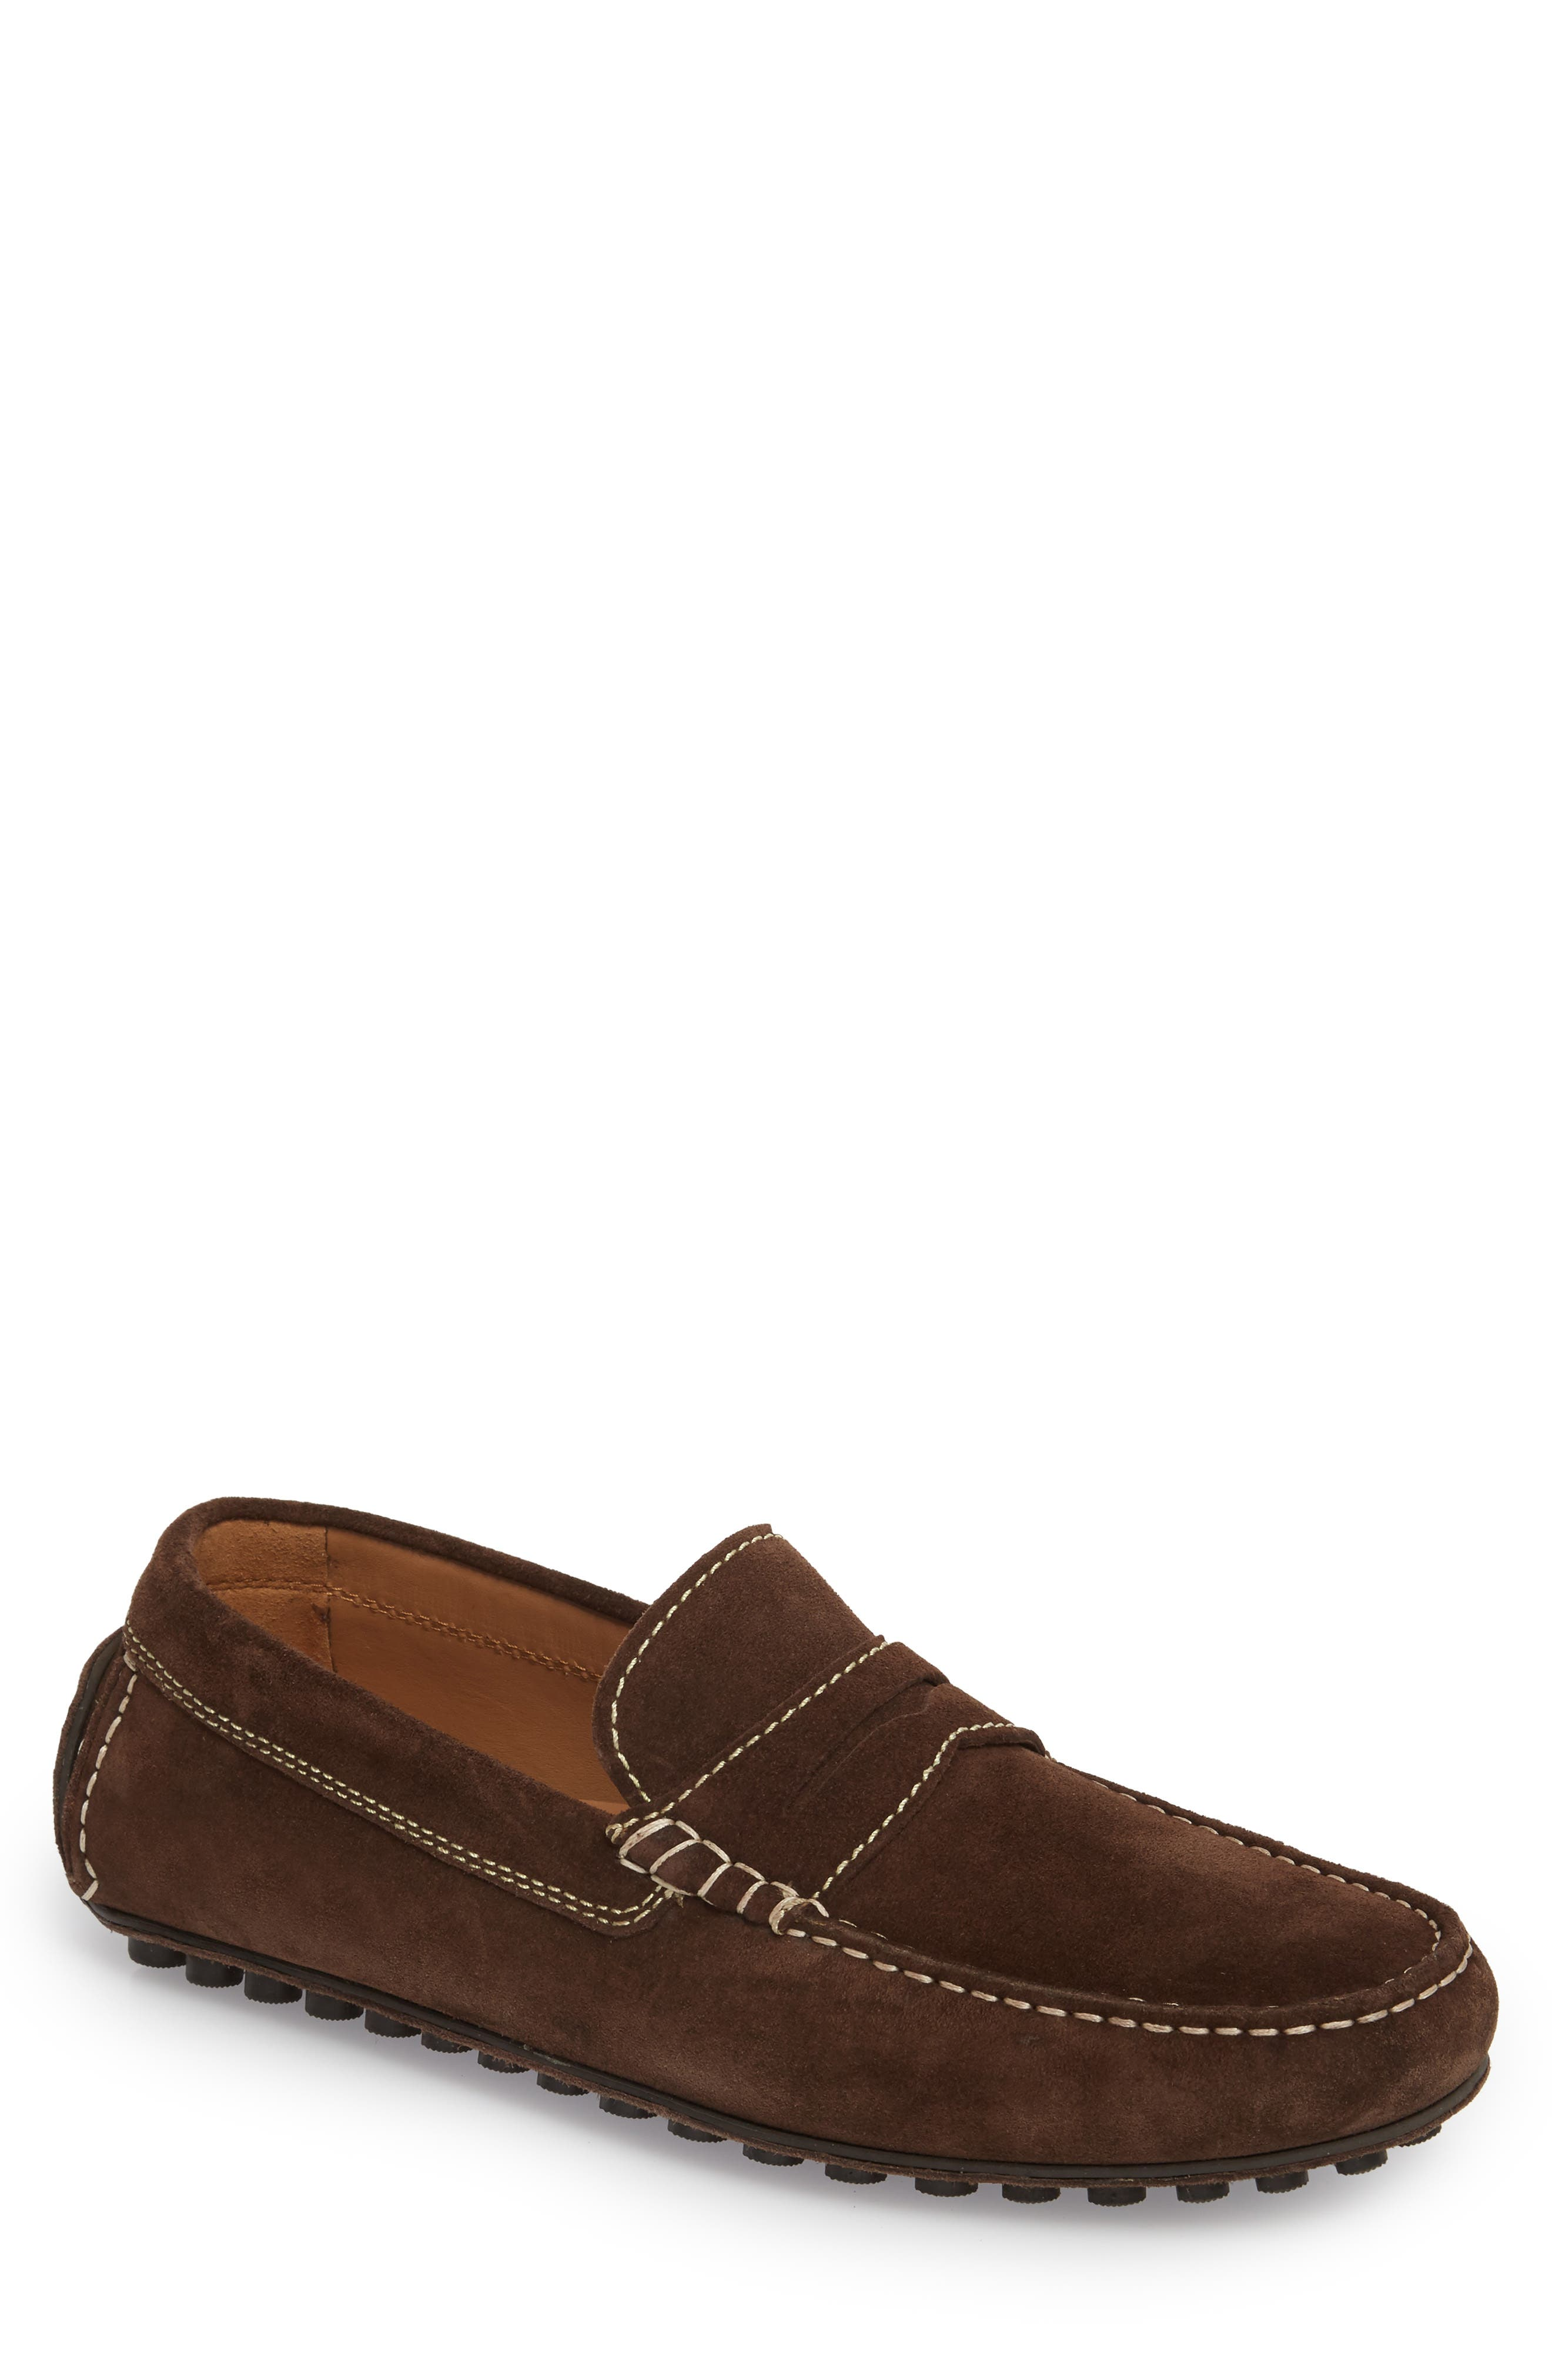 Le Mans Penny Driving Loafer,                             Main thumbnail 1, color,                             CHOCOLATE